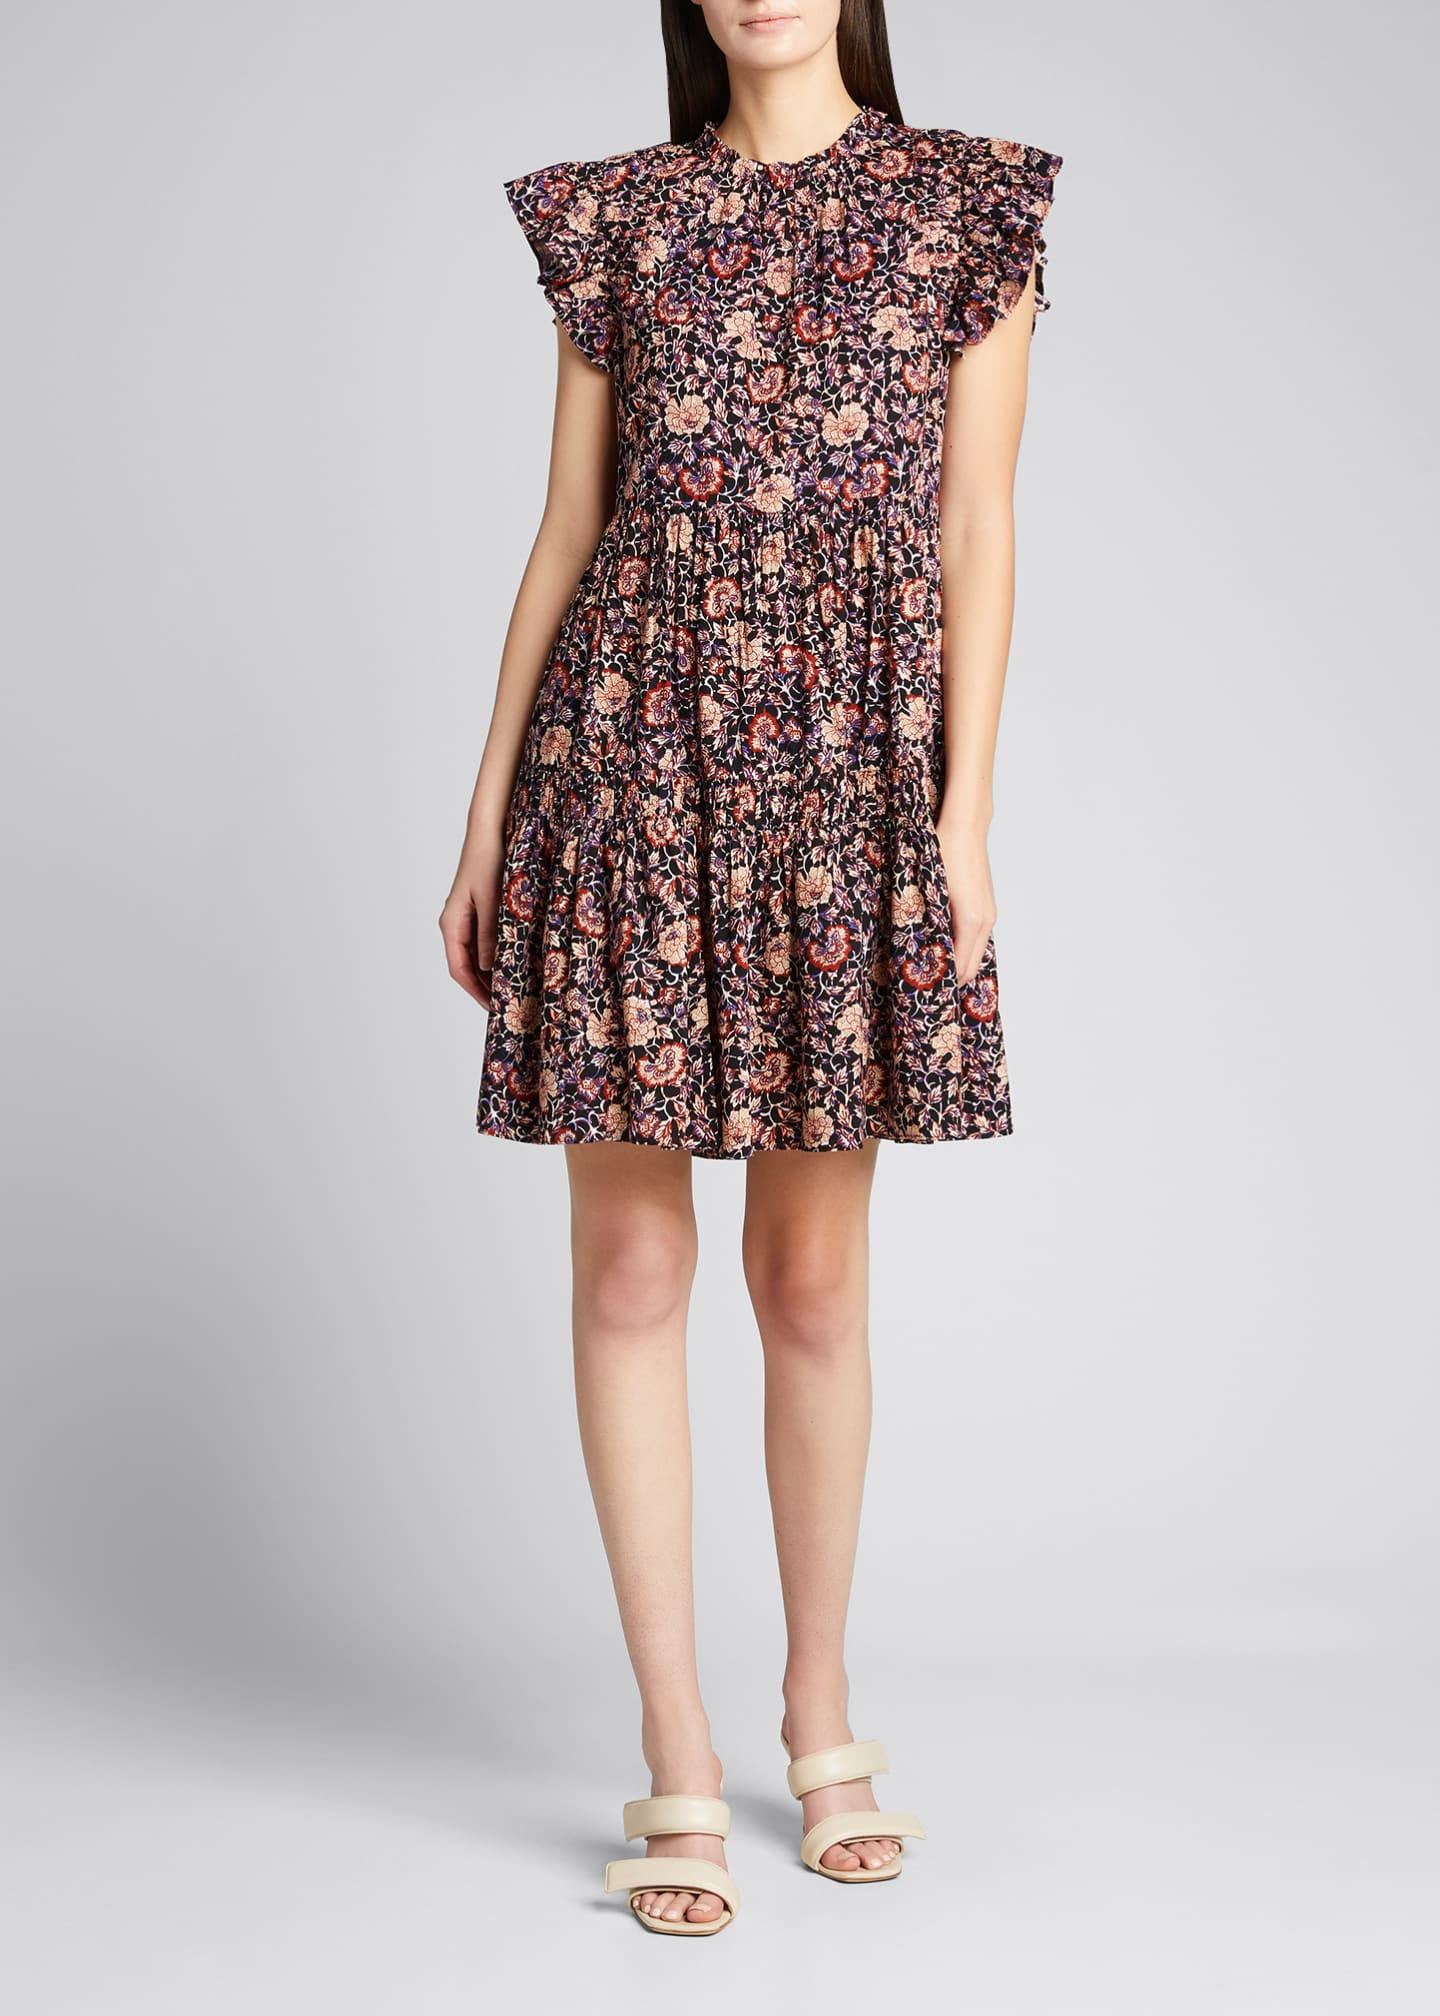 Image 1 of 5: Hana Floral Short-Sleeve Dress